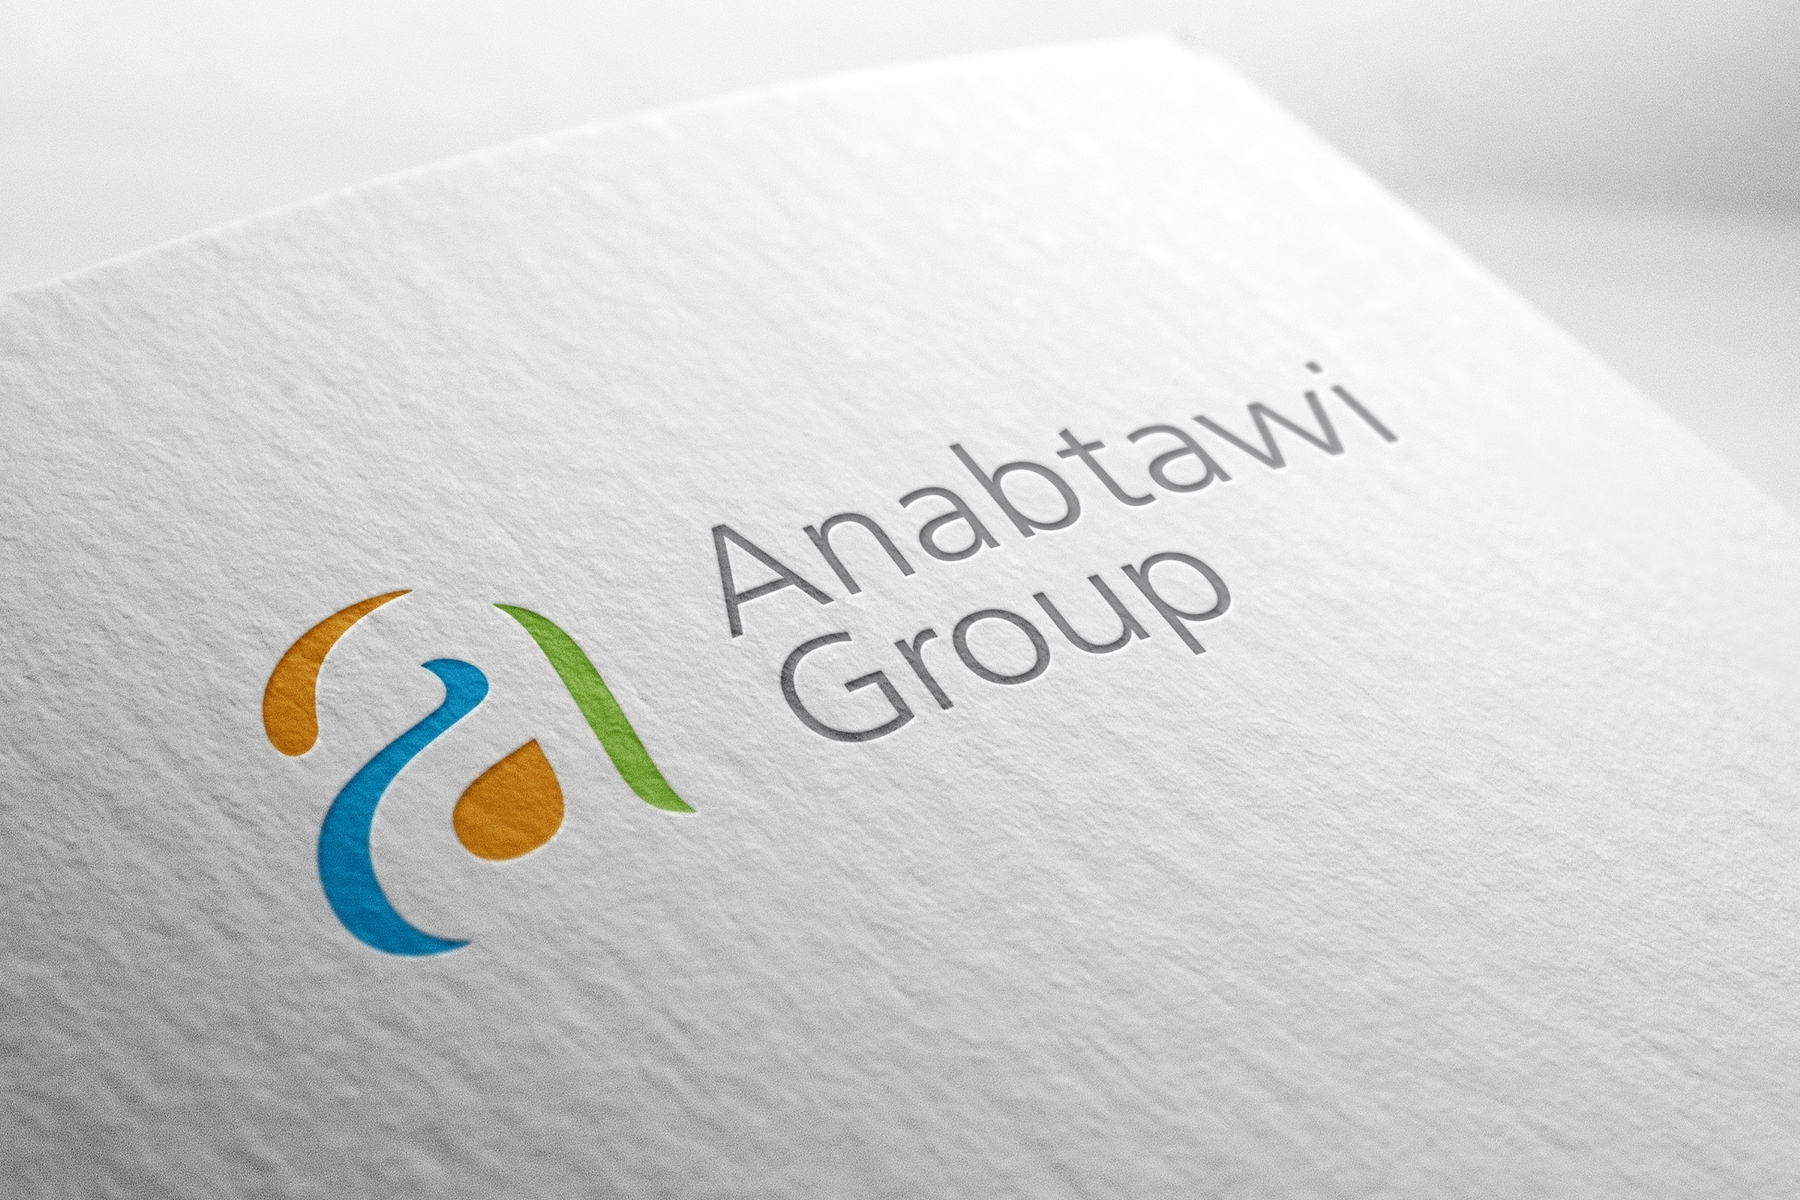 Anabtawi Group Investment Company